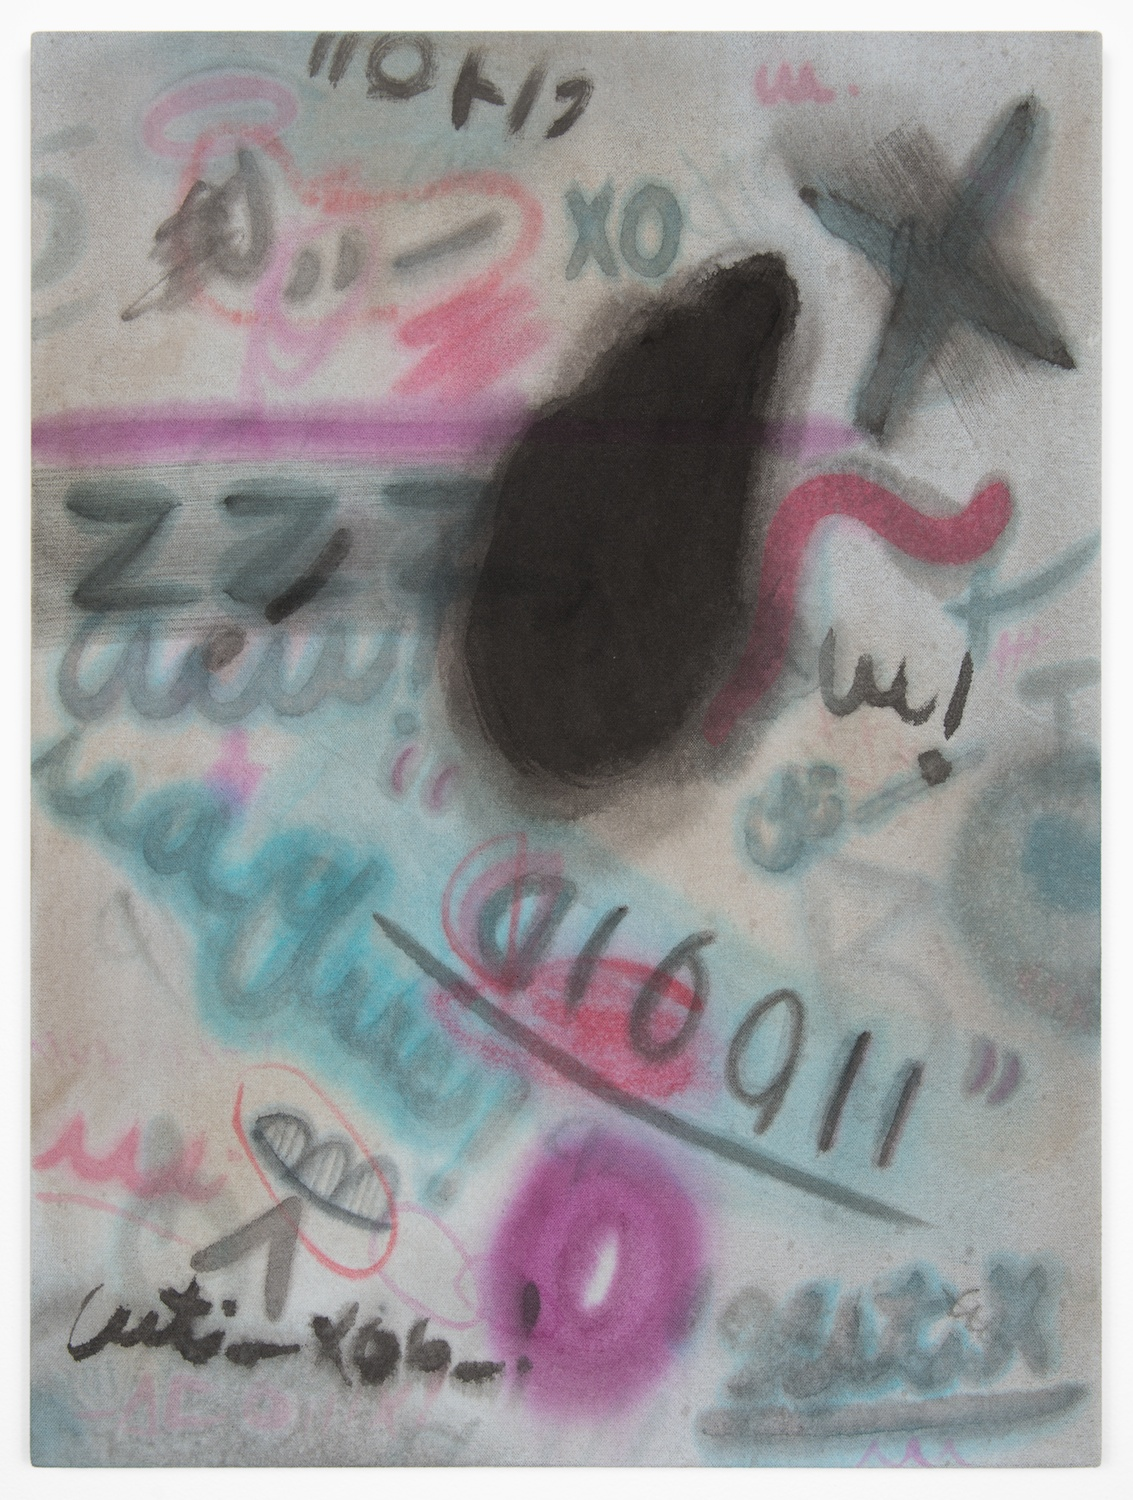 Amanda Ross-Ho  Untitled Painting (OZZY)  2013 Acrylic on dyed canvas 24h x 18w in ARH046